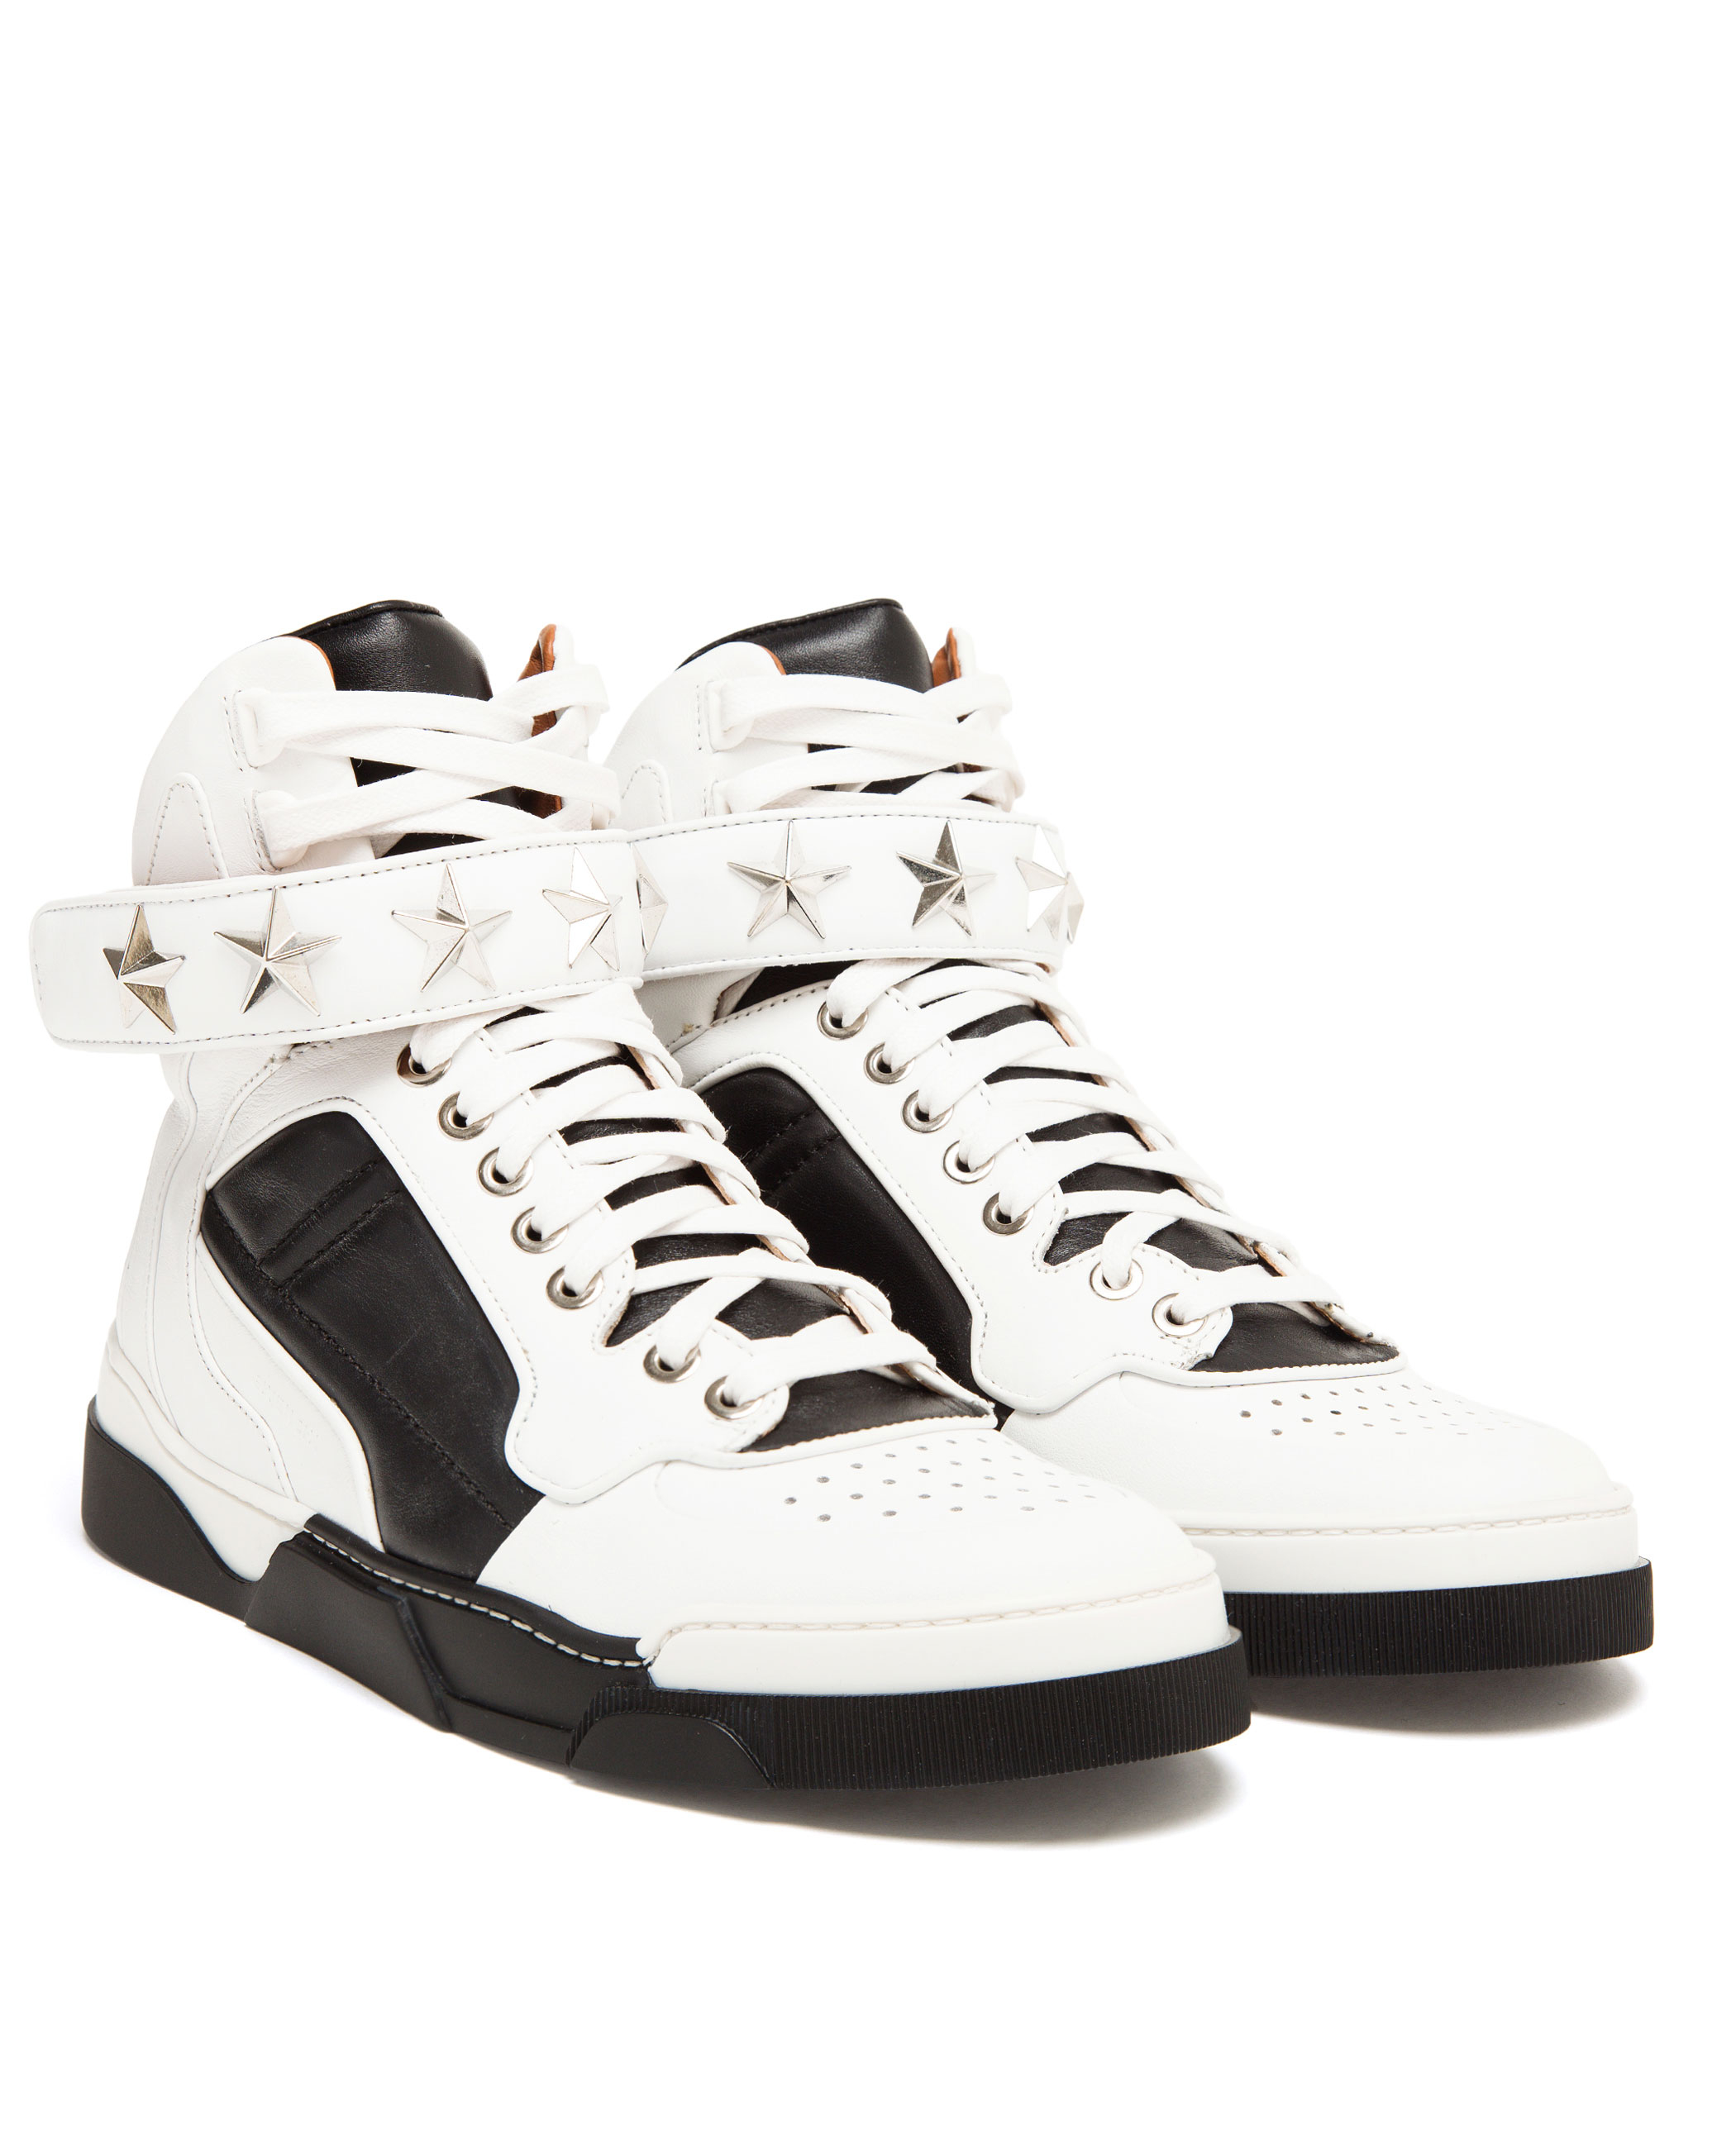 Lyst - Givenchy Tyson Black Leather High Top Trainers in Black for Men 9378fac1b